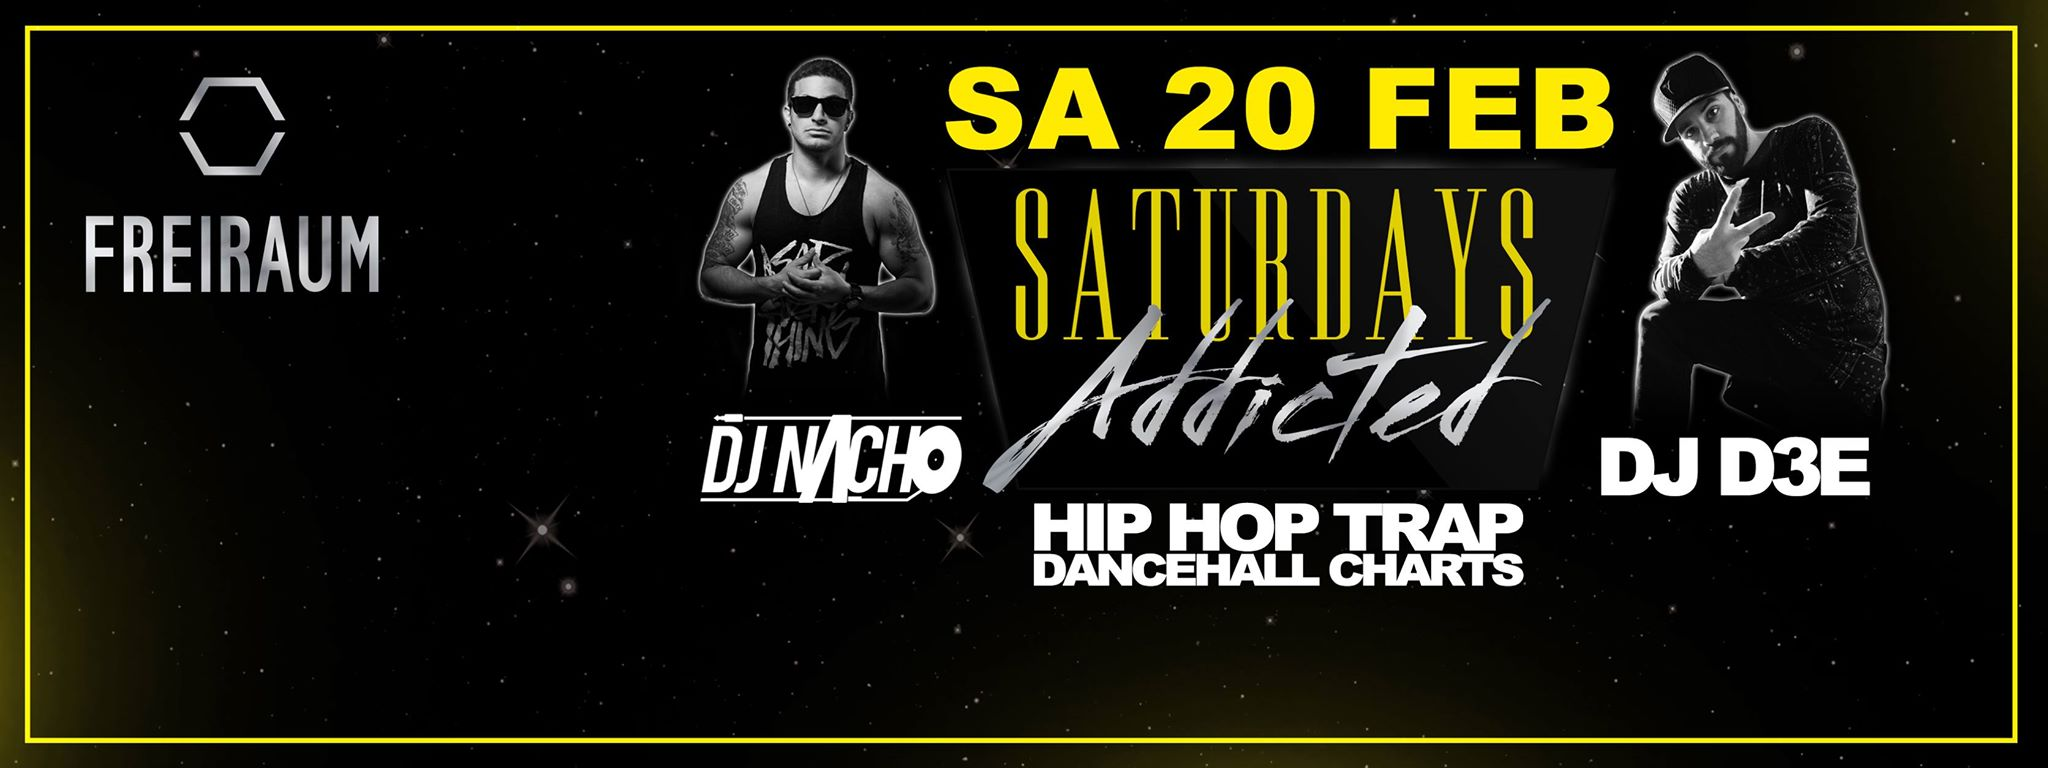 Saturdays Addicted: DJ NACHO feat. DJ D3E // SA 20 FEB @FREIRAUM